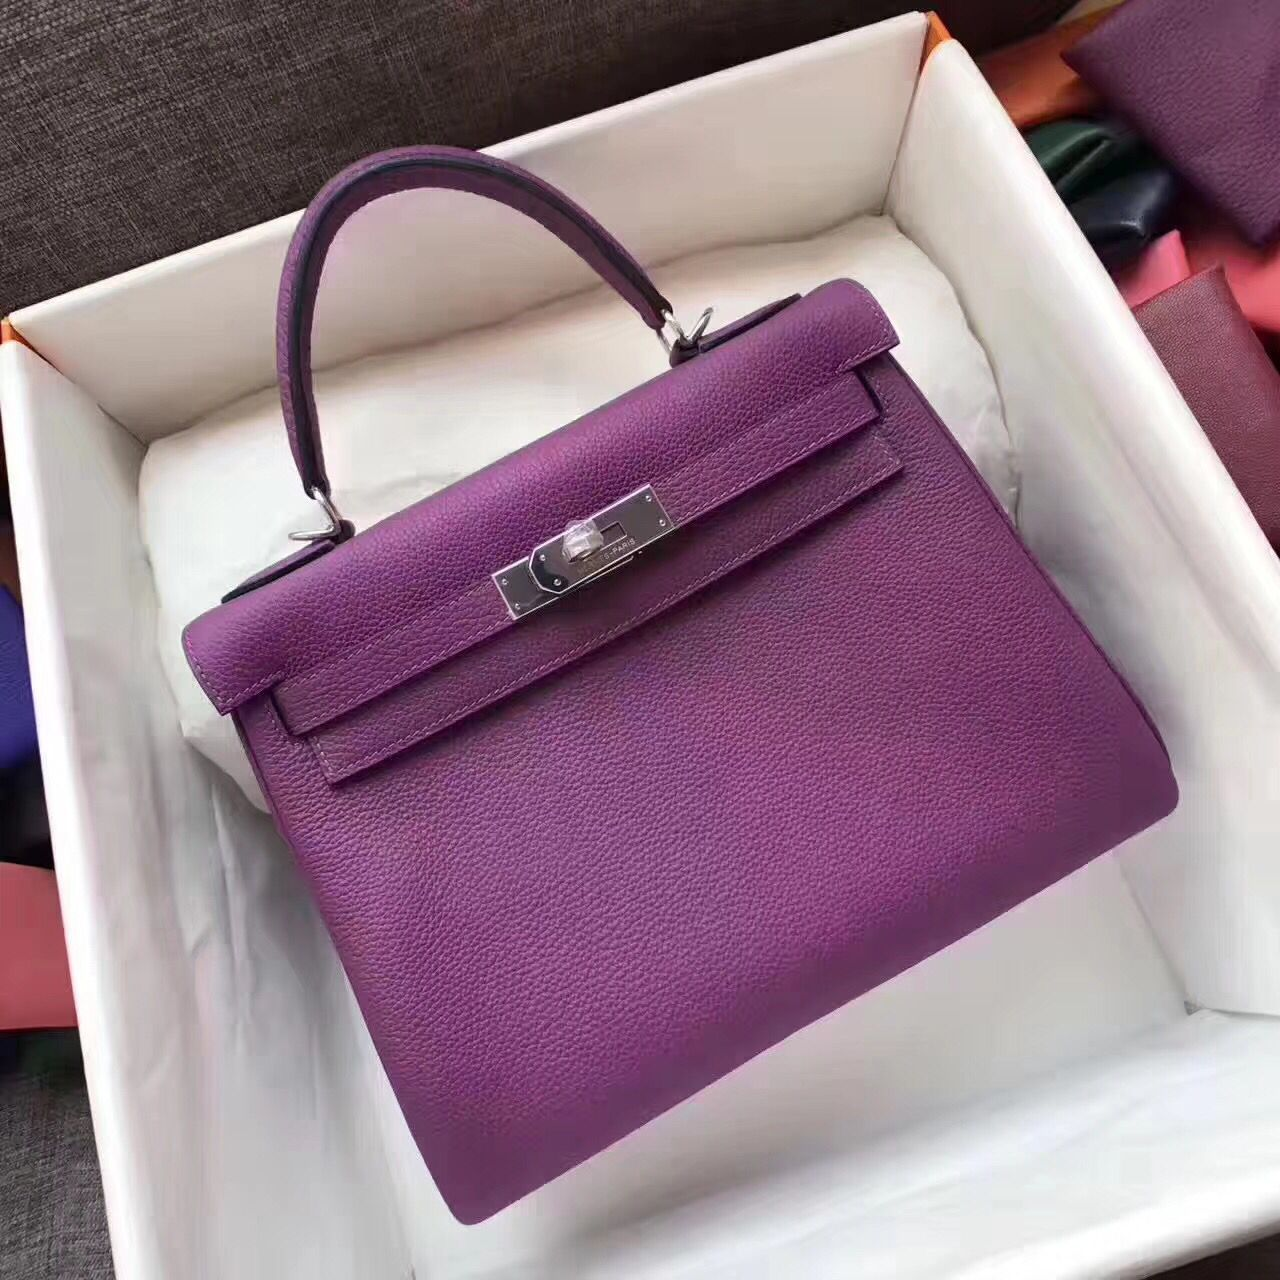 Hermes Kelly 32cm/28cm Shoulder Bag TOGO Leather KY28 Purple